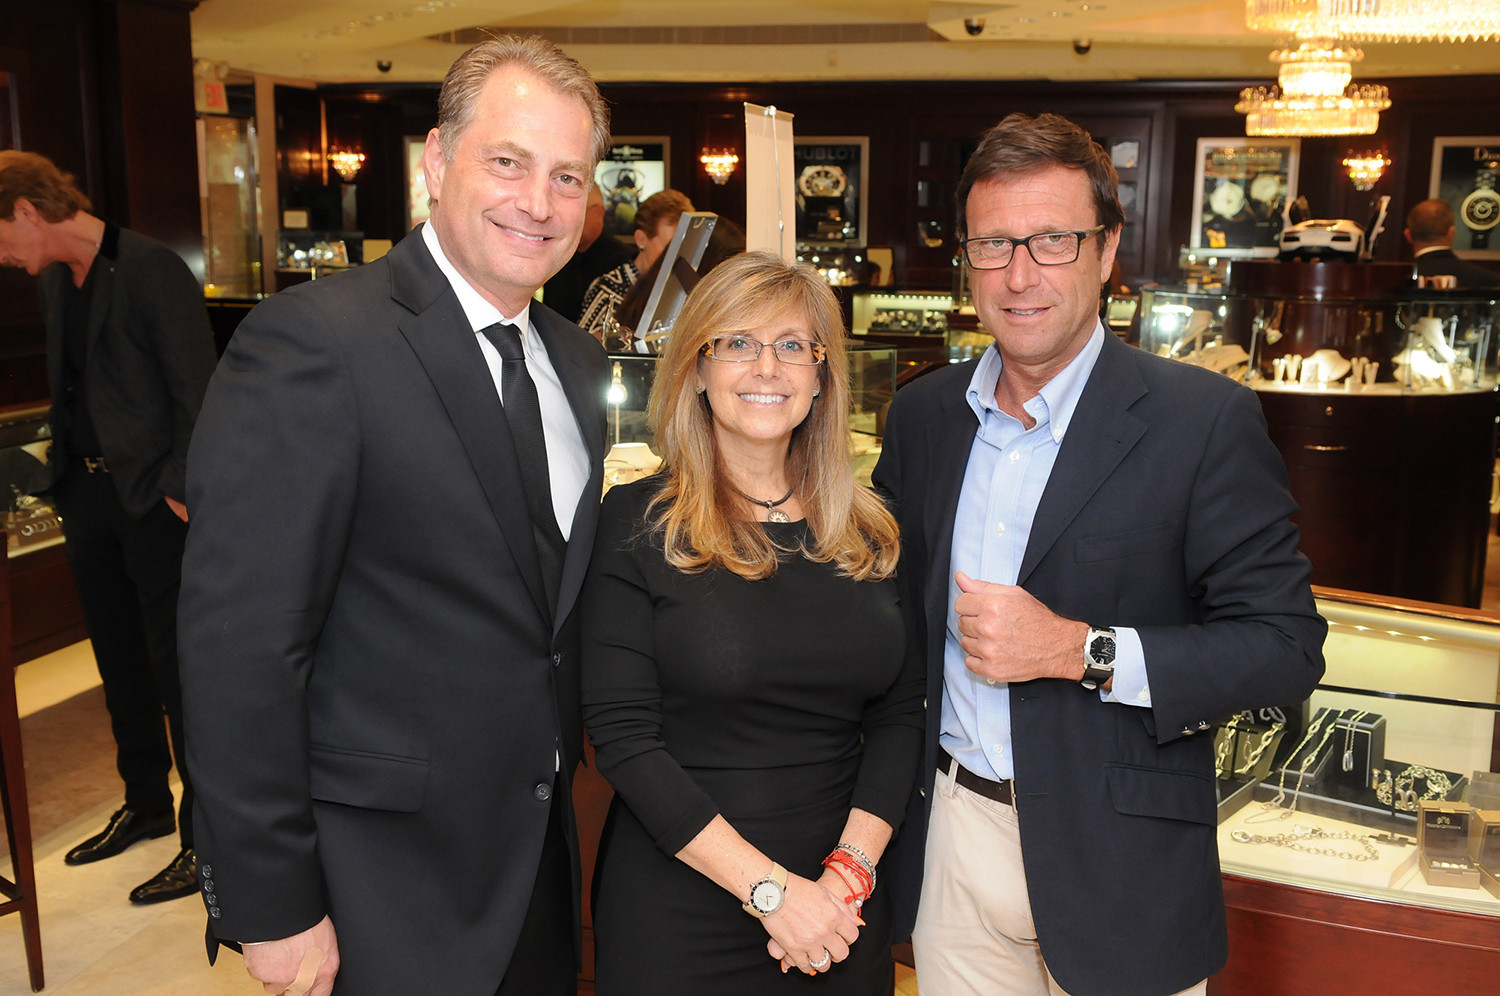 Society Scene photos - Ed Dikes & Tracey Dikes, Co-Owners of Weston Jewelers with Alberto Festa, President of Bulgari